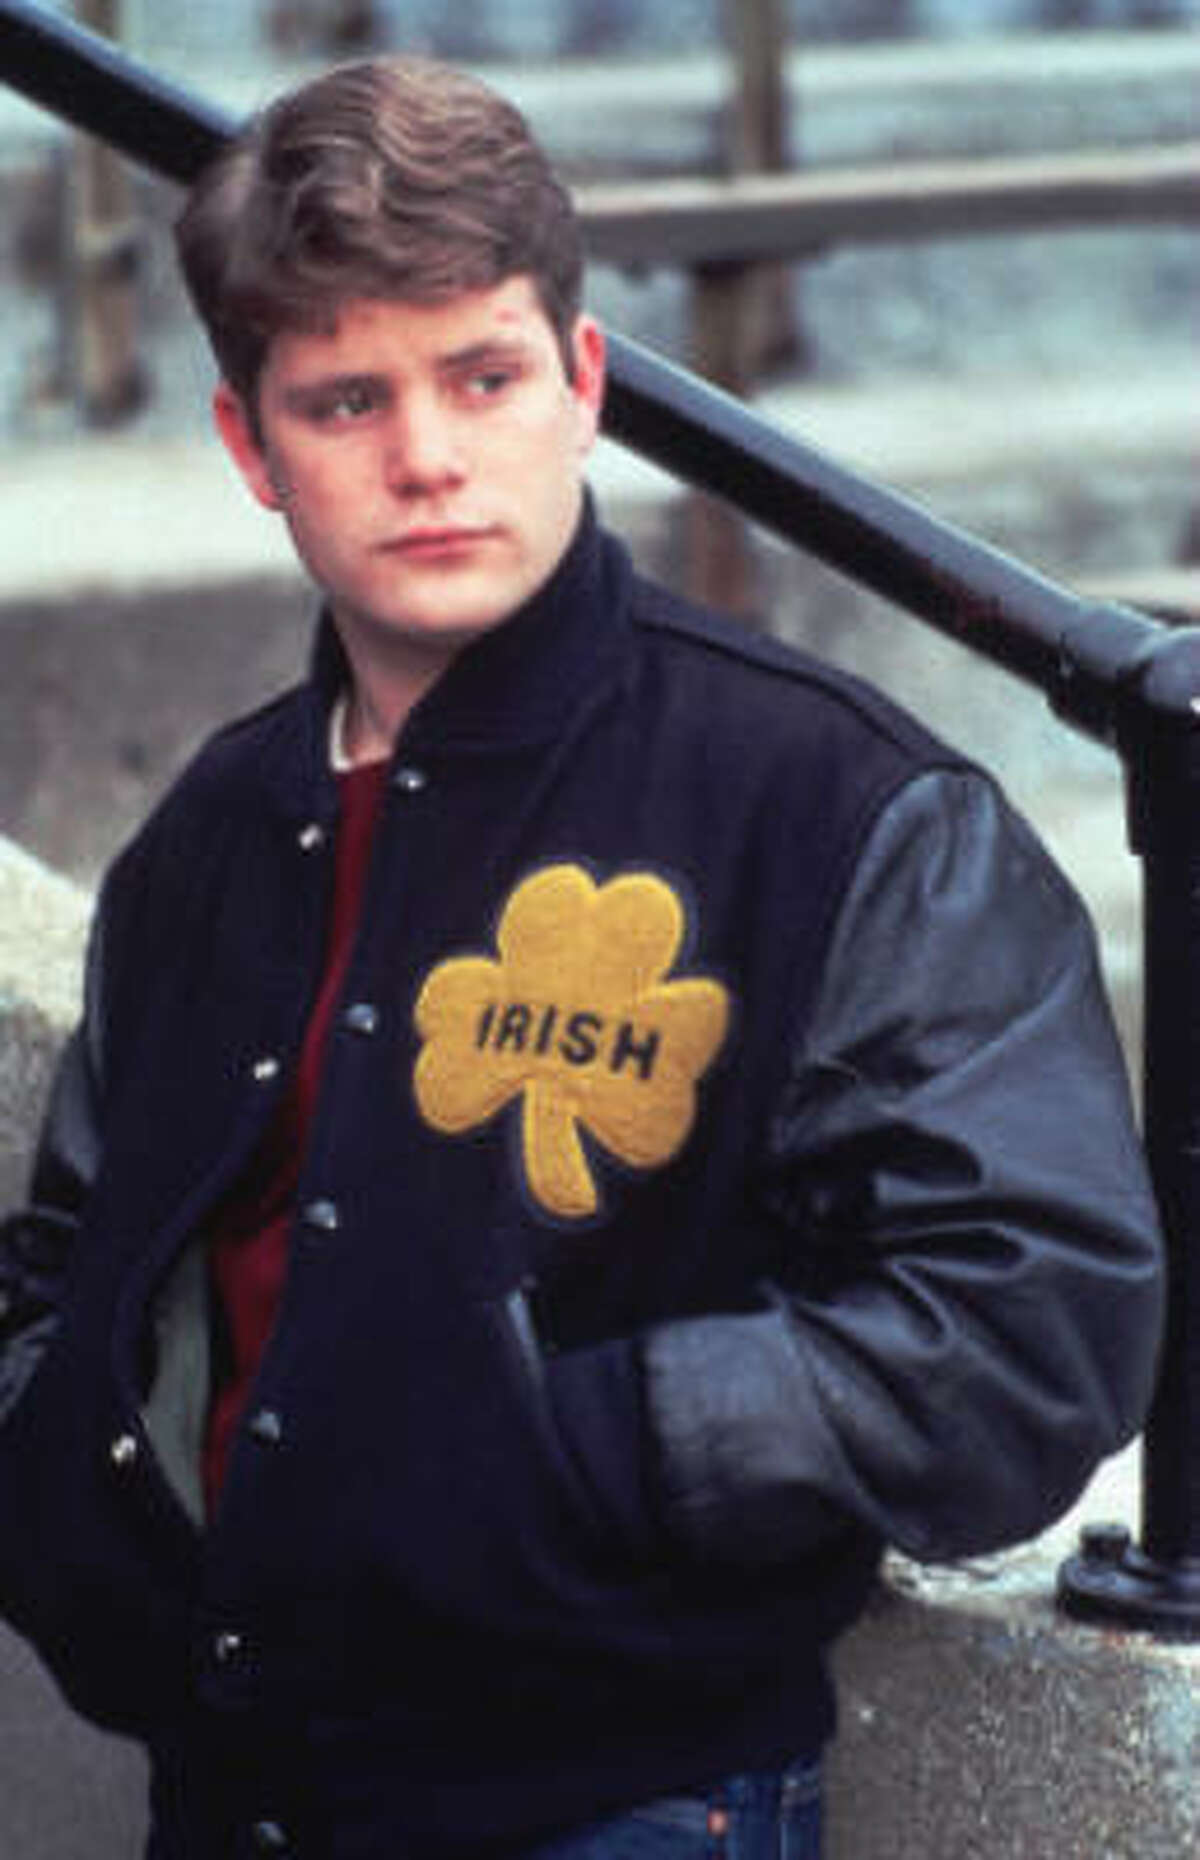 Rudy (1993) is about a boy that overcame the odds to play football at Notre Dame.